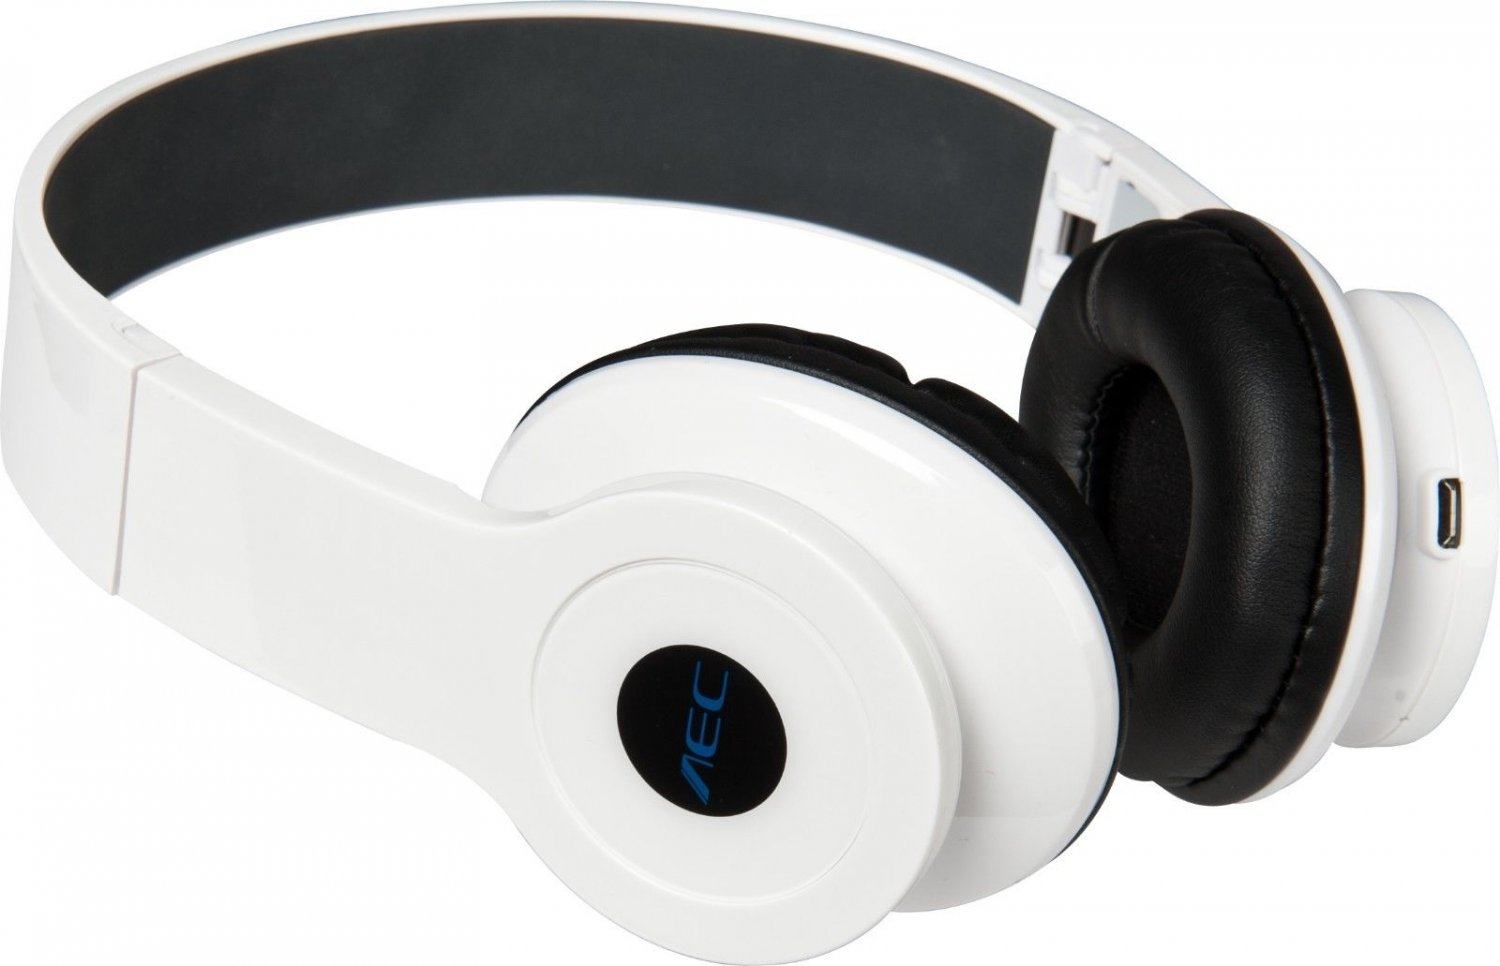 New 2Pcs Wireless Stereo Bluetooth Headphone for Mobile Cell Phone Laptop Tablet